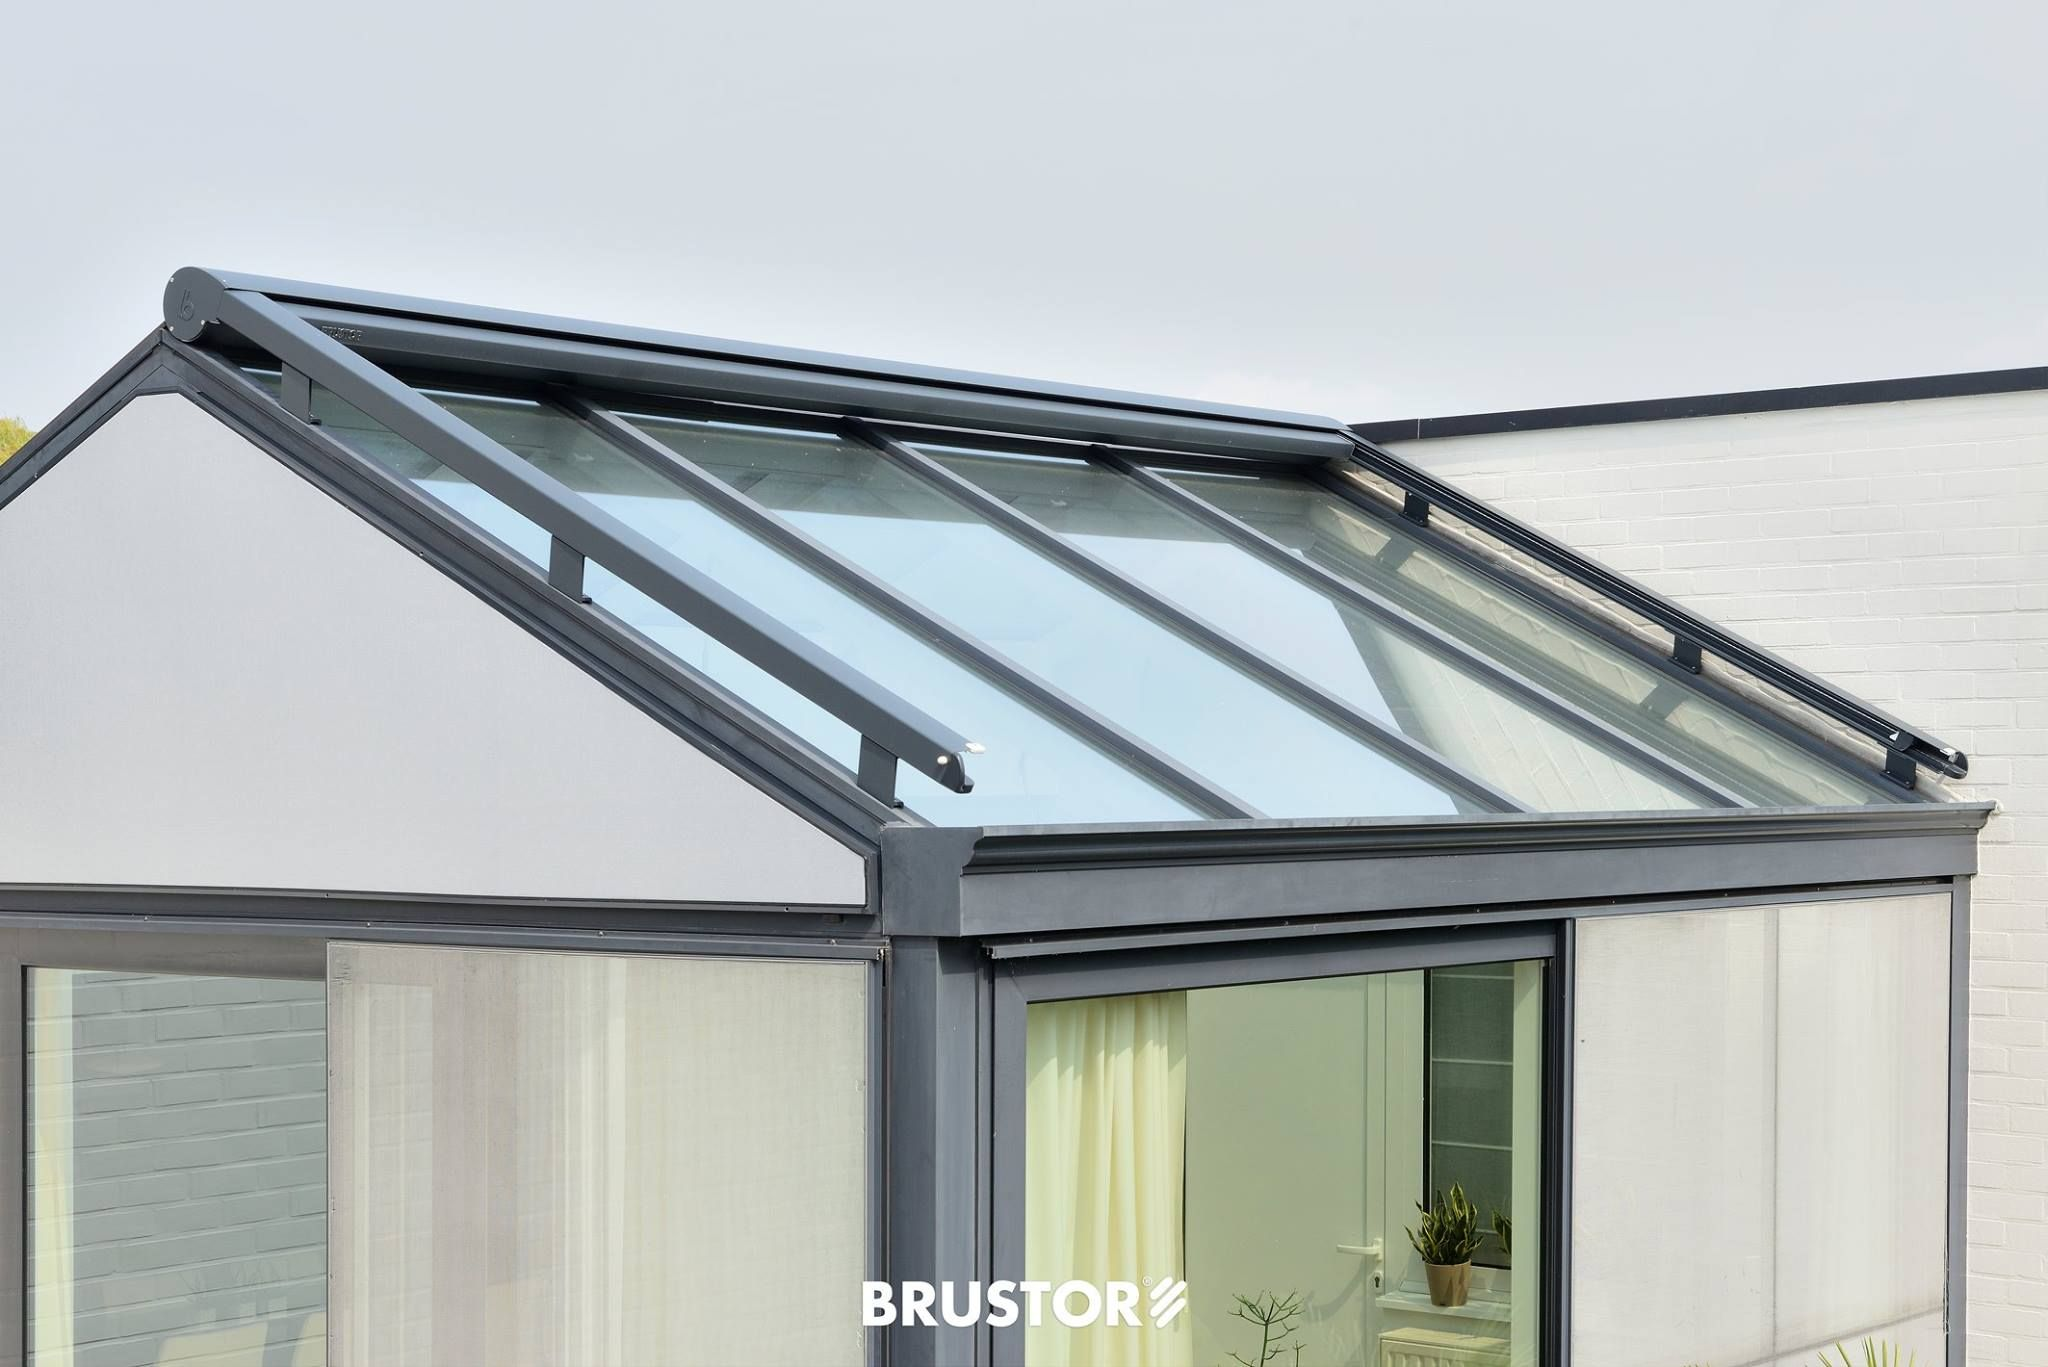 Brustor Serre Zonwering The B126 Is A Motorized Awning With Lateral Guides For